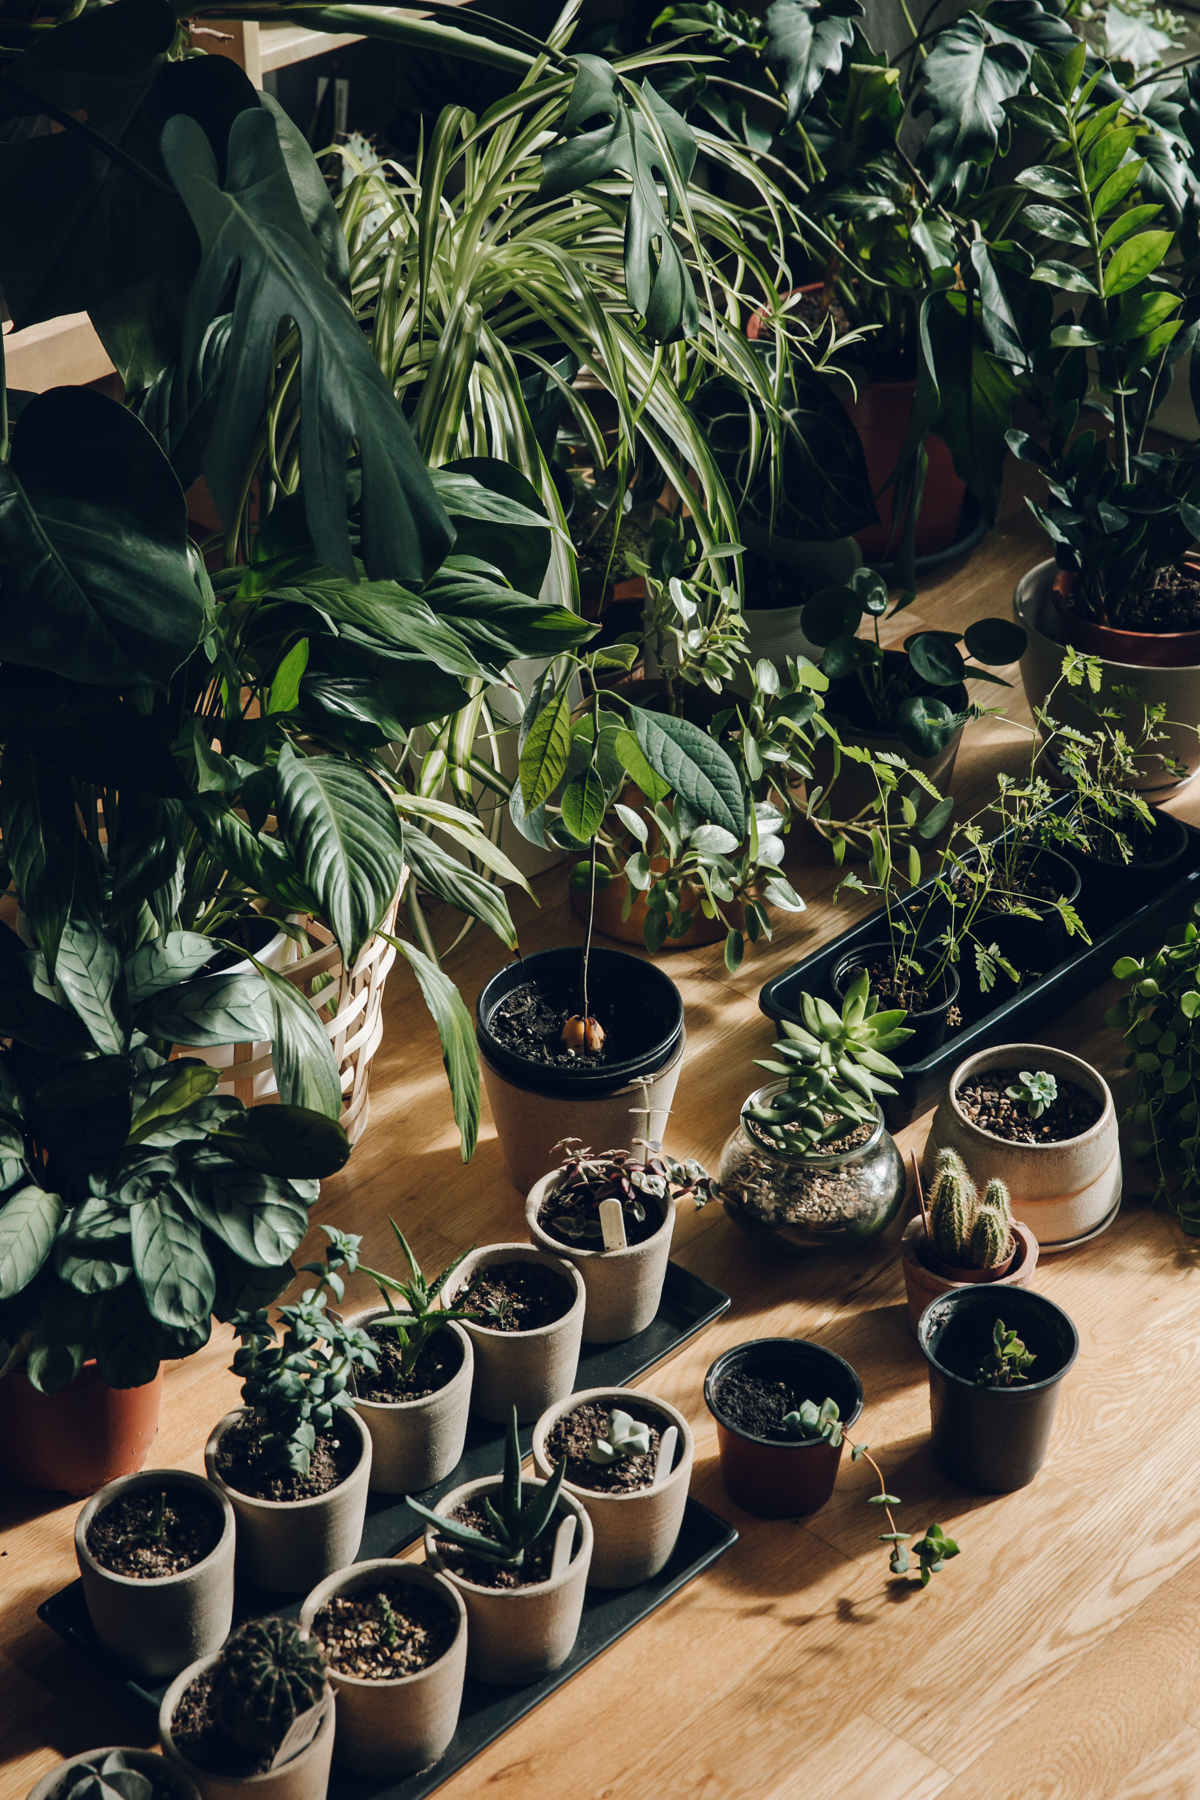 An indoor plant collection.